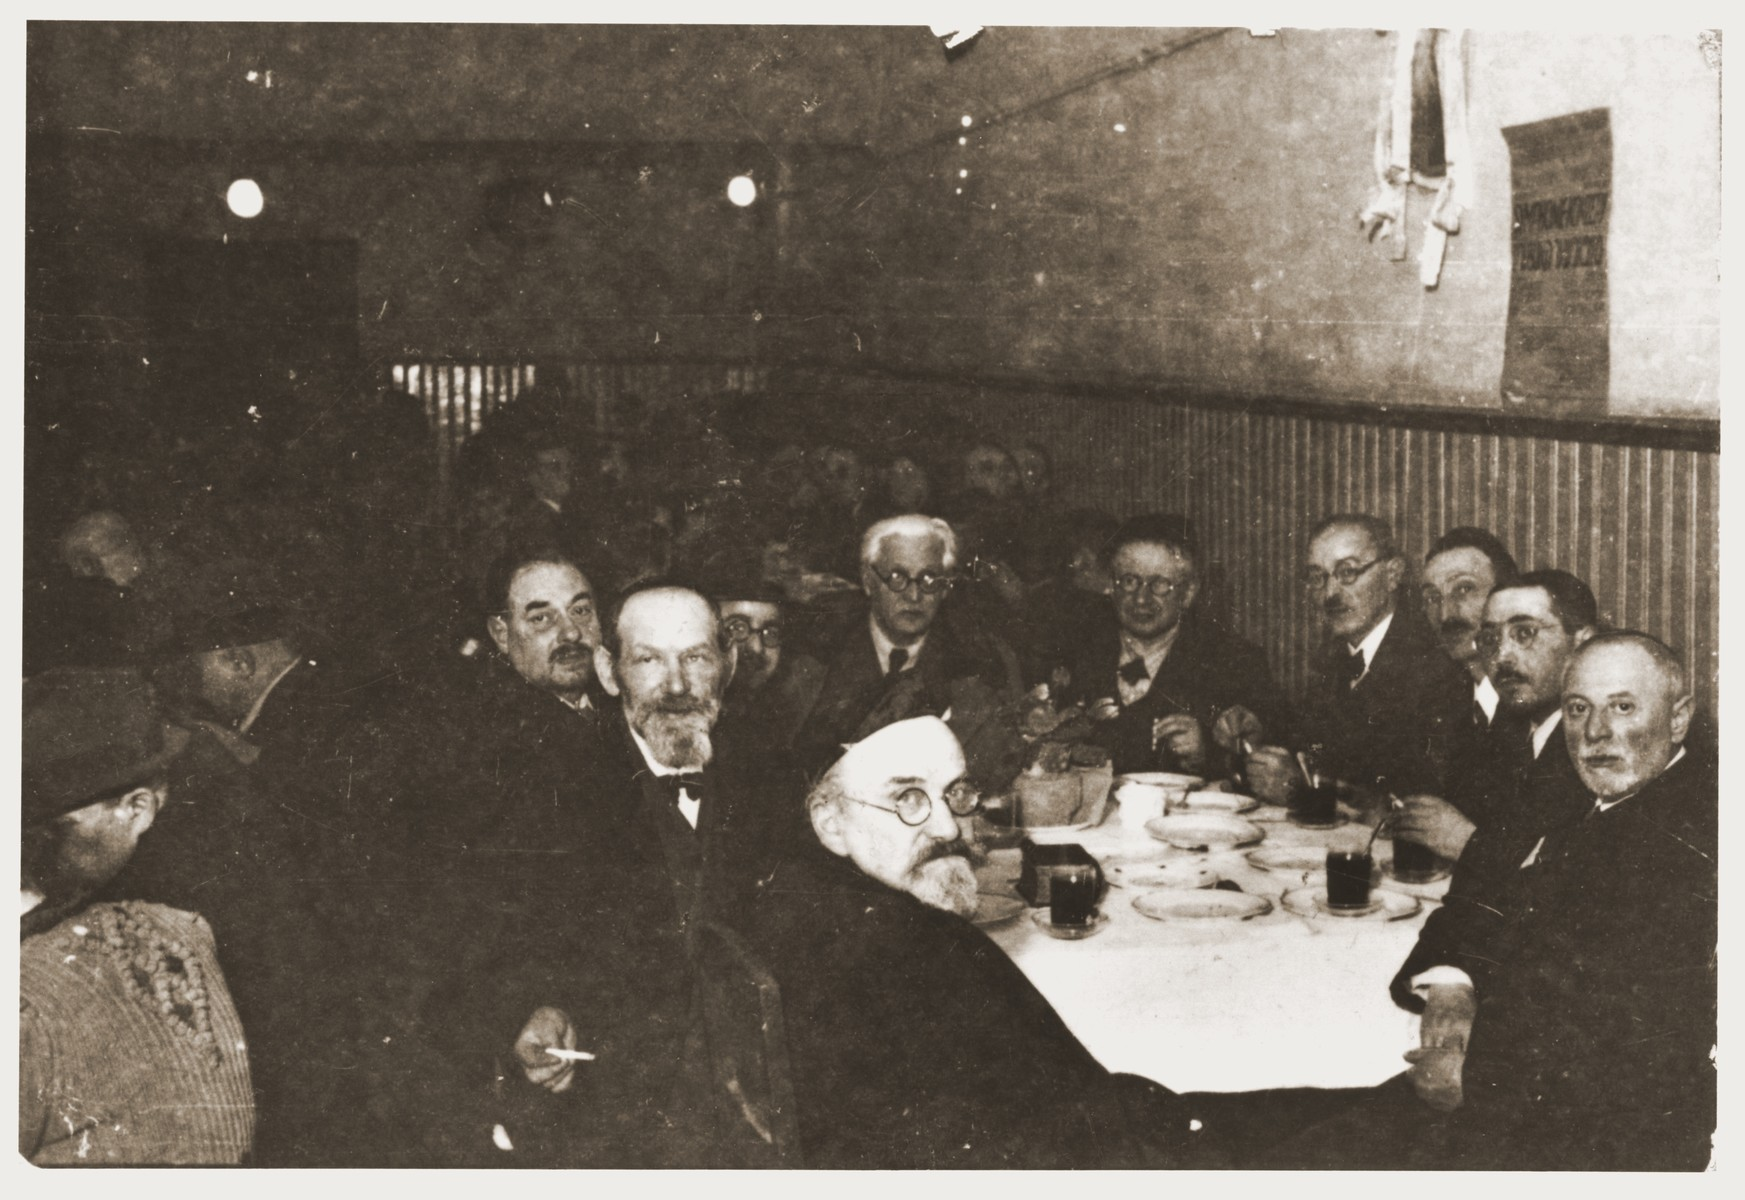 Mordechai Chaim Rumkowski, chairman of the Jewish council, meets with a group of rabbis around a table in a dining hall in the Lodz ghetto.